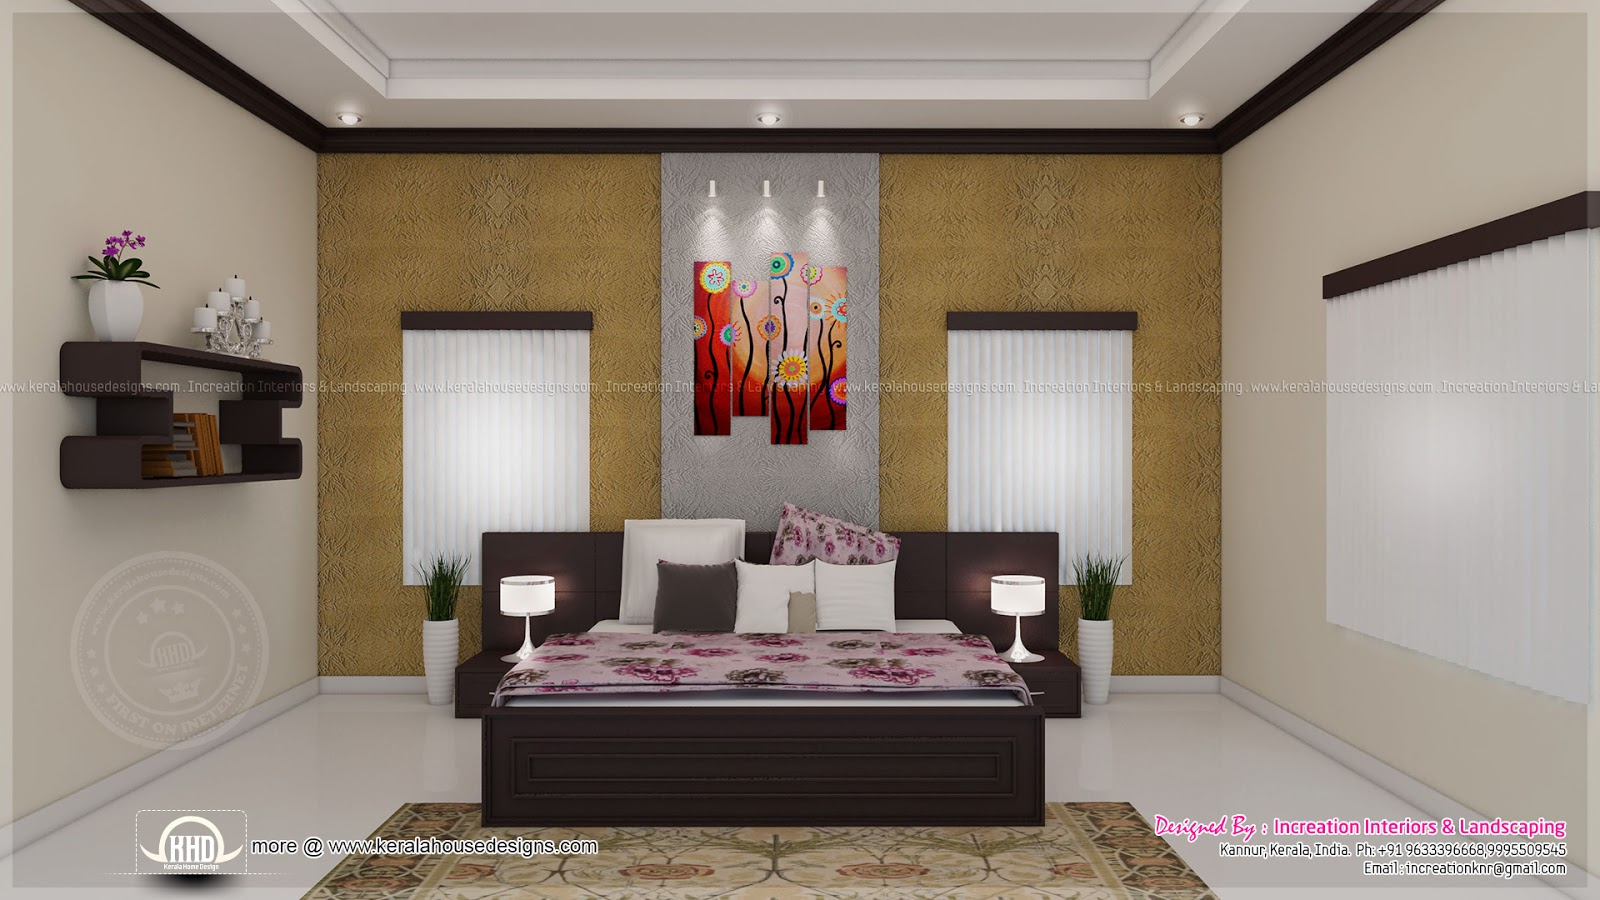 Homes Interior Designs House Interior Ideas In 3d Rendering Kerala Home Design